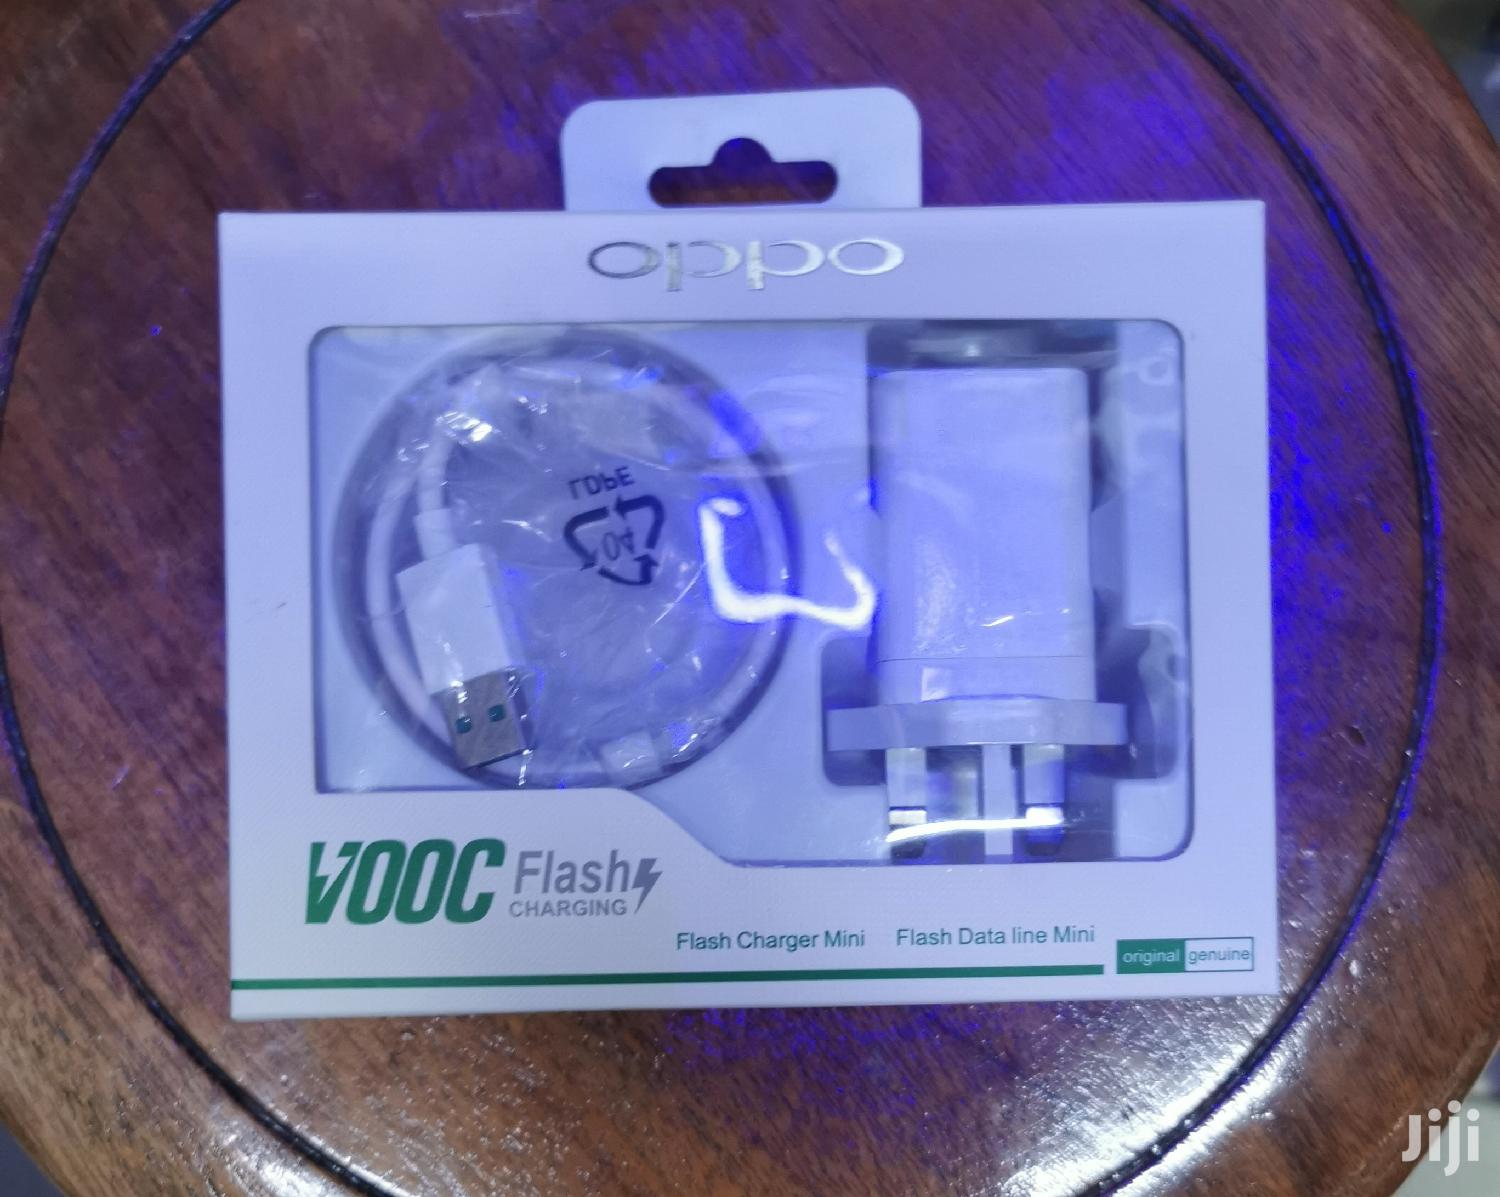 Oppo Original Charger | Accessories for Mobile Phones & Tablets for sale in Nairobi Central, Nairobi, Kenya